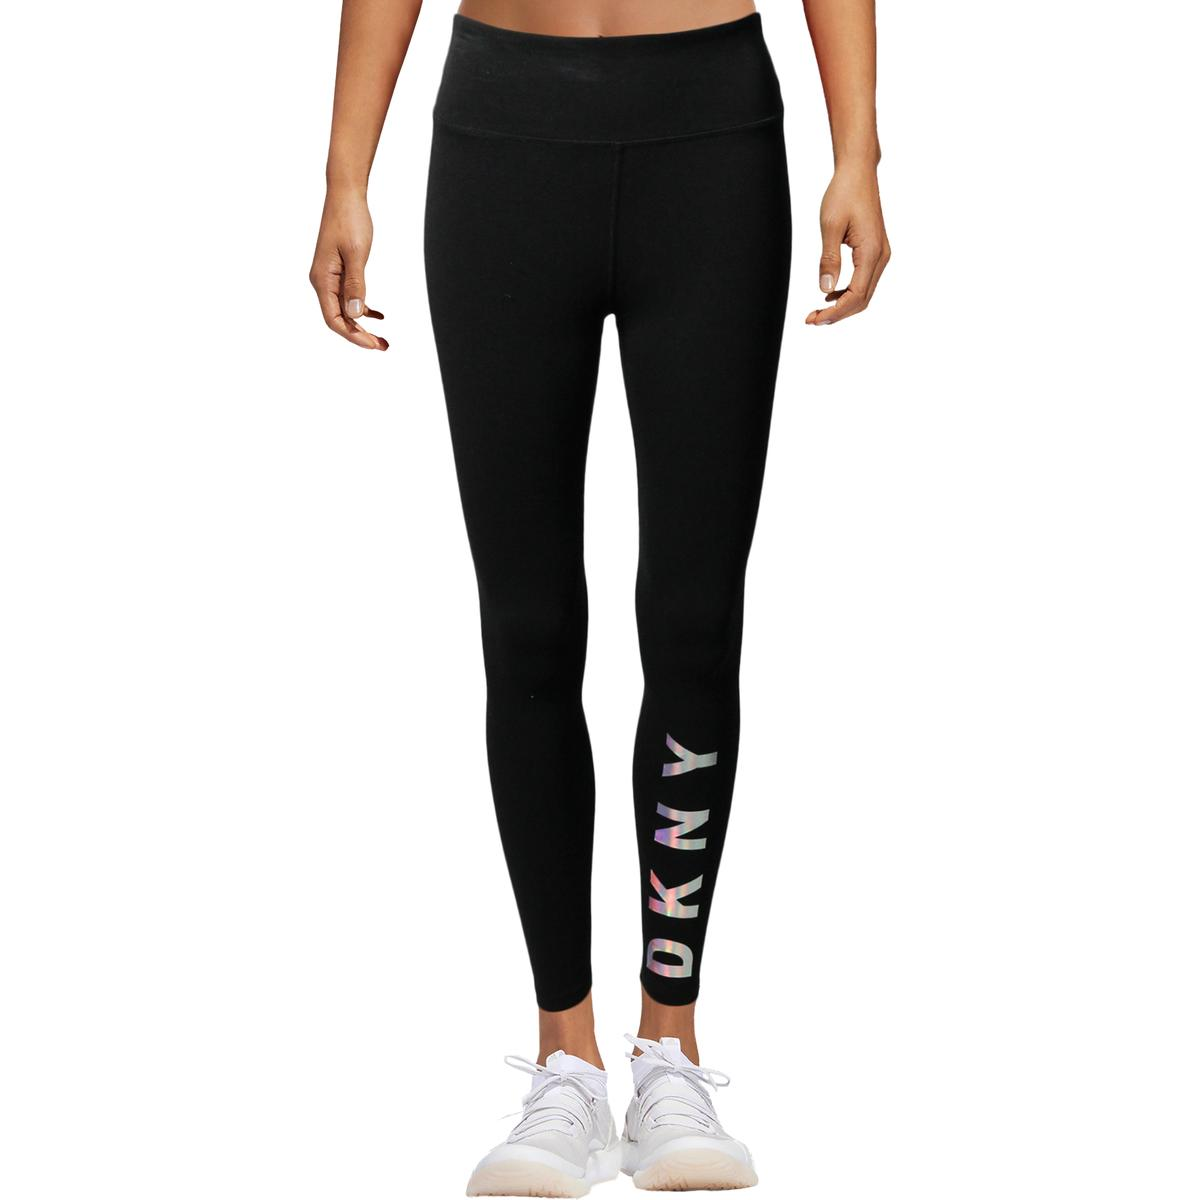 aa922ff0a6af5 Details about DKNY Sport Womens Running Workout Training Athletic Leggings  Athletic BHFO 1510